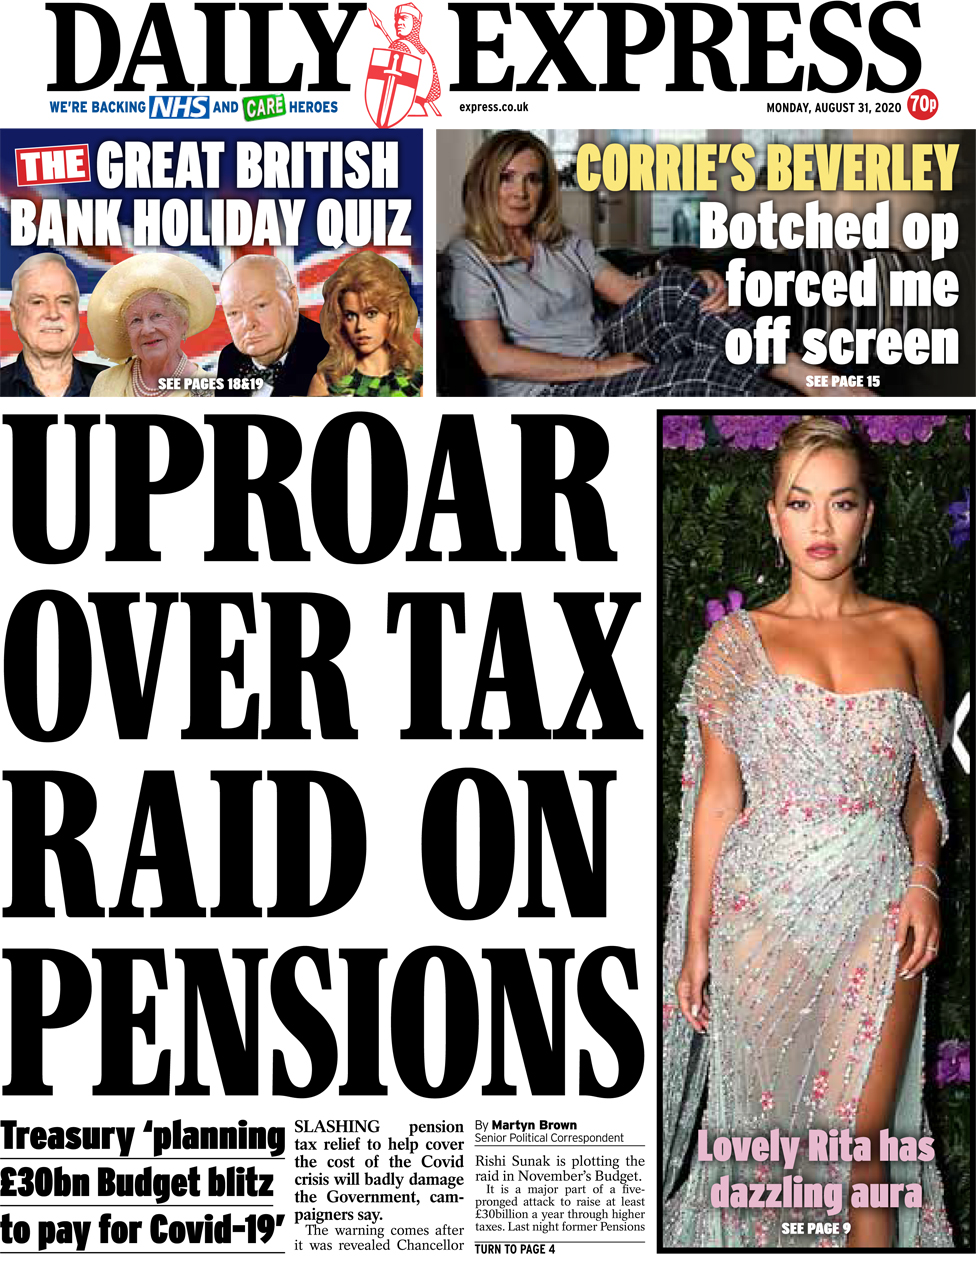 The Daily Express front page 31 August 2020